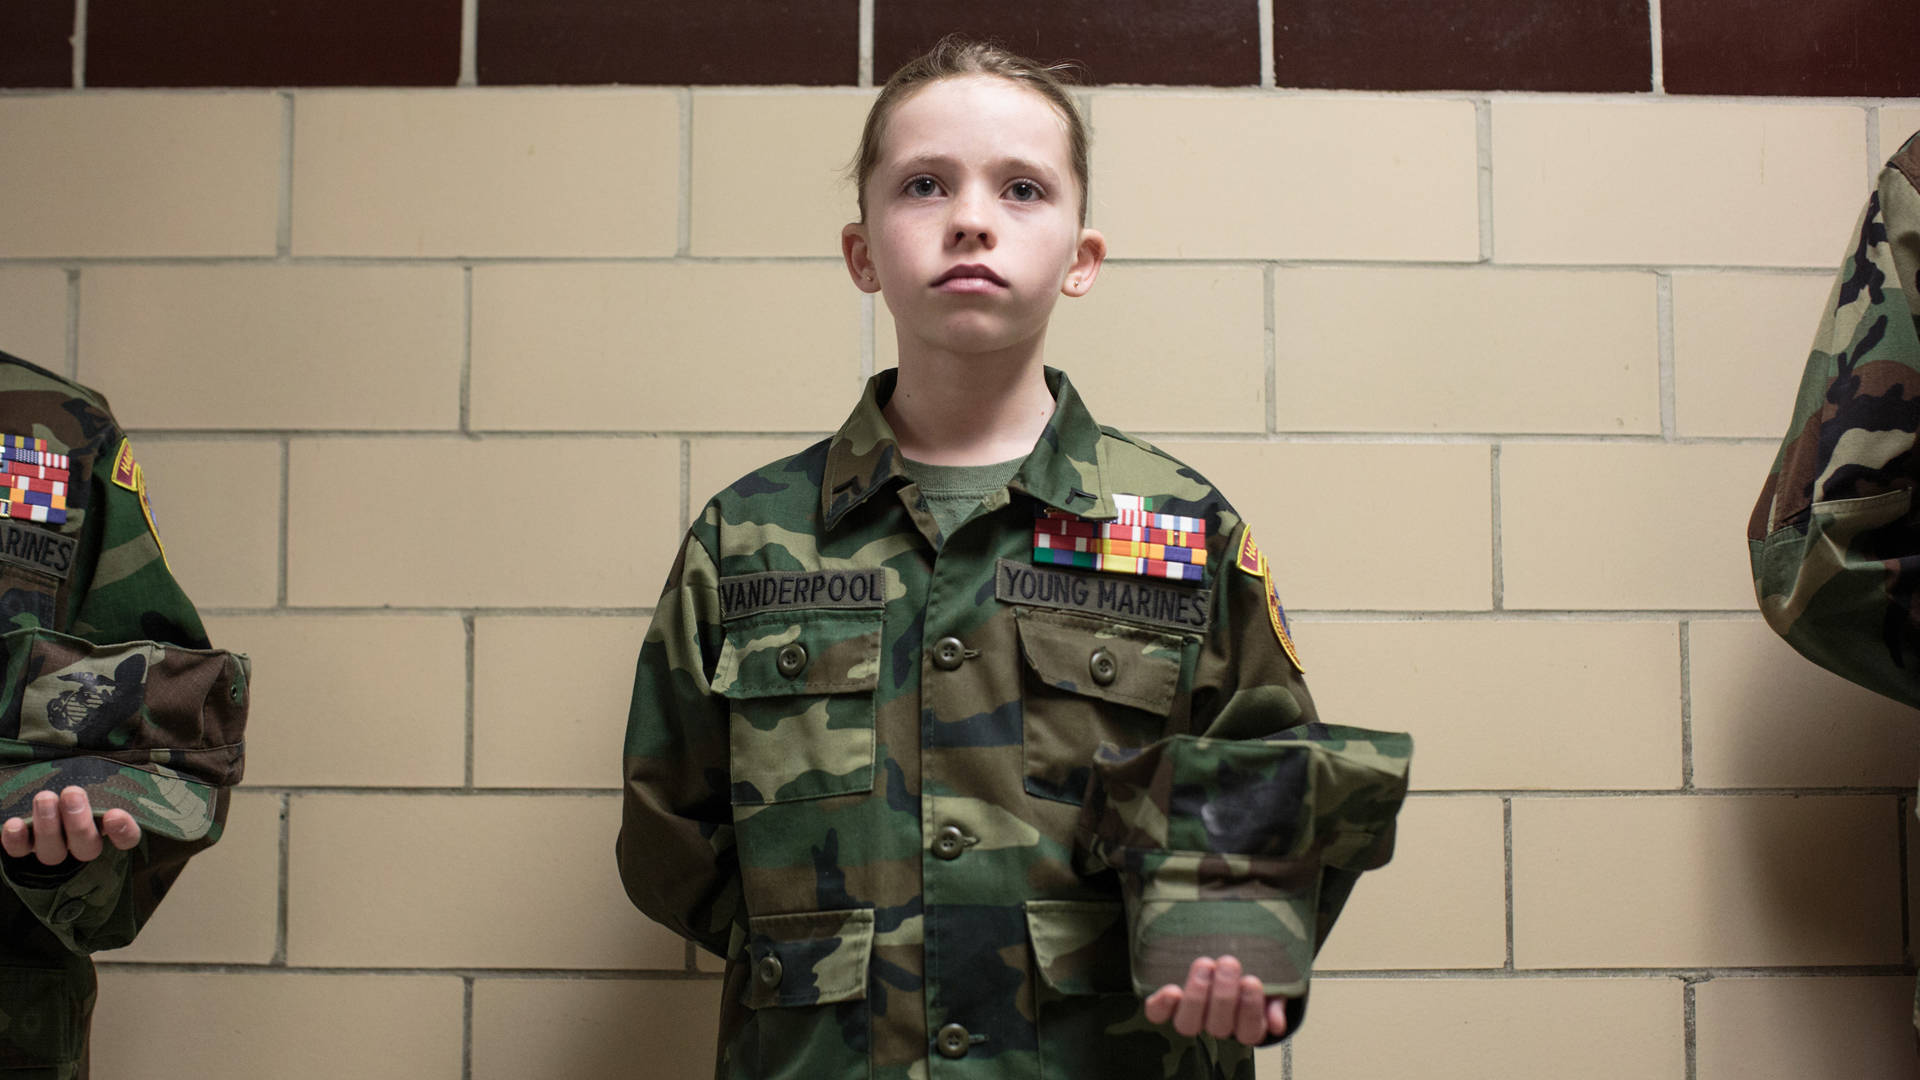 Sarah Blesener, from 'Beckon Us From Home,' 2017. An 11-year-old Young Marines recruit holds her pose during uniform inspection in Hanover, Pennsylvania. Courtesy of Sarah Blesener, 2017 CatchLight Fellow